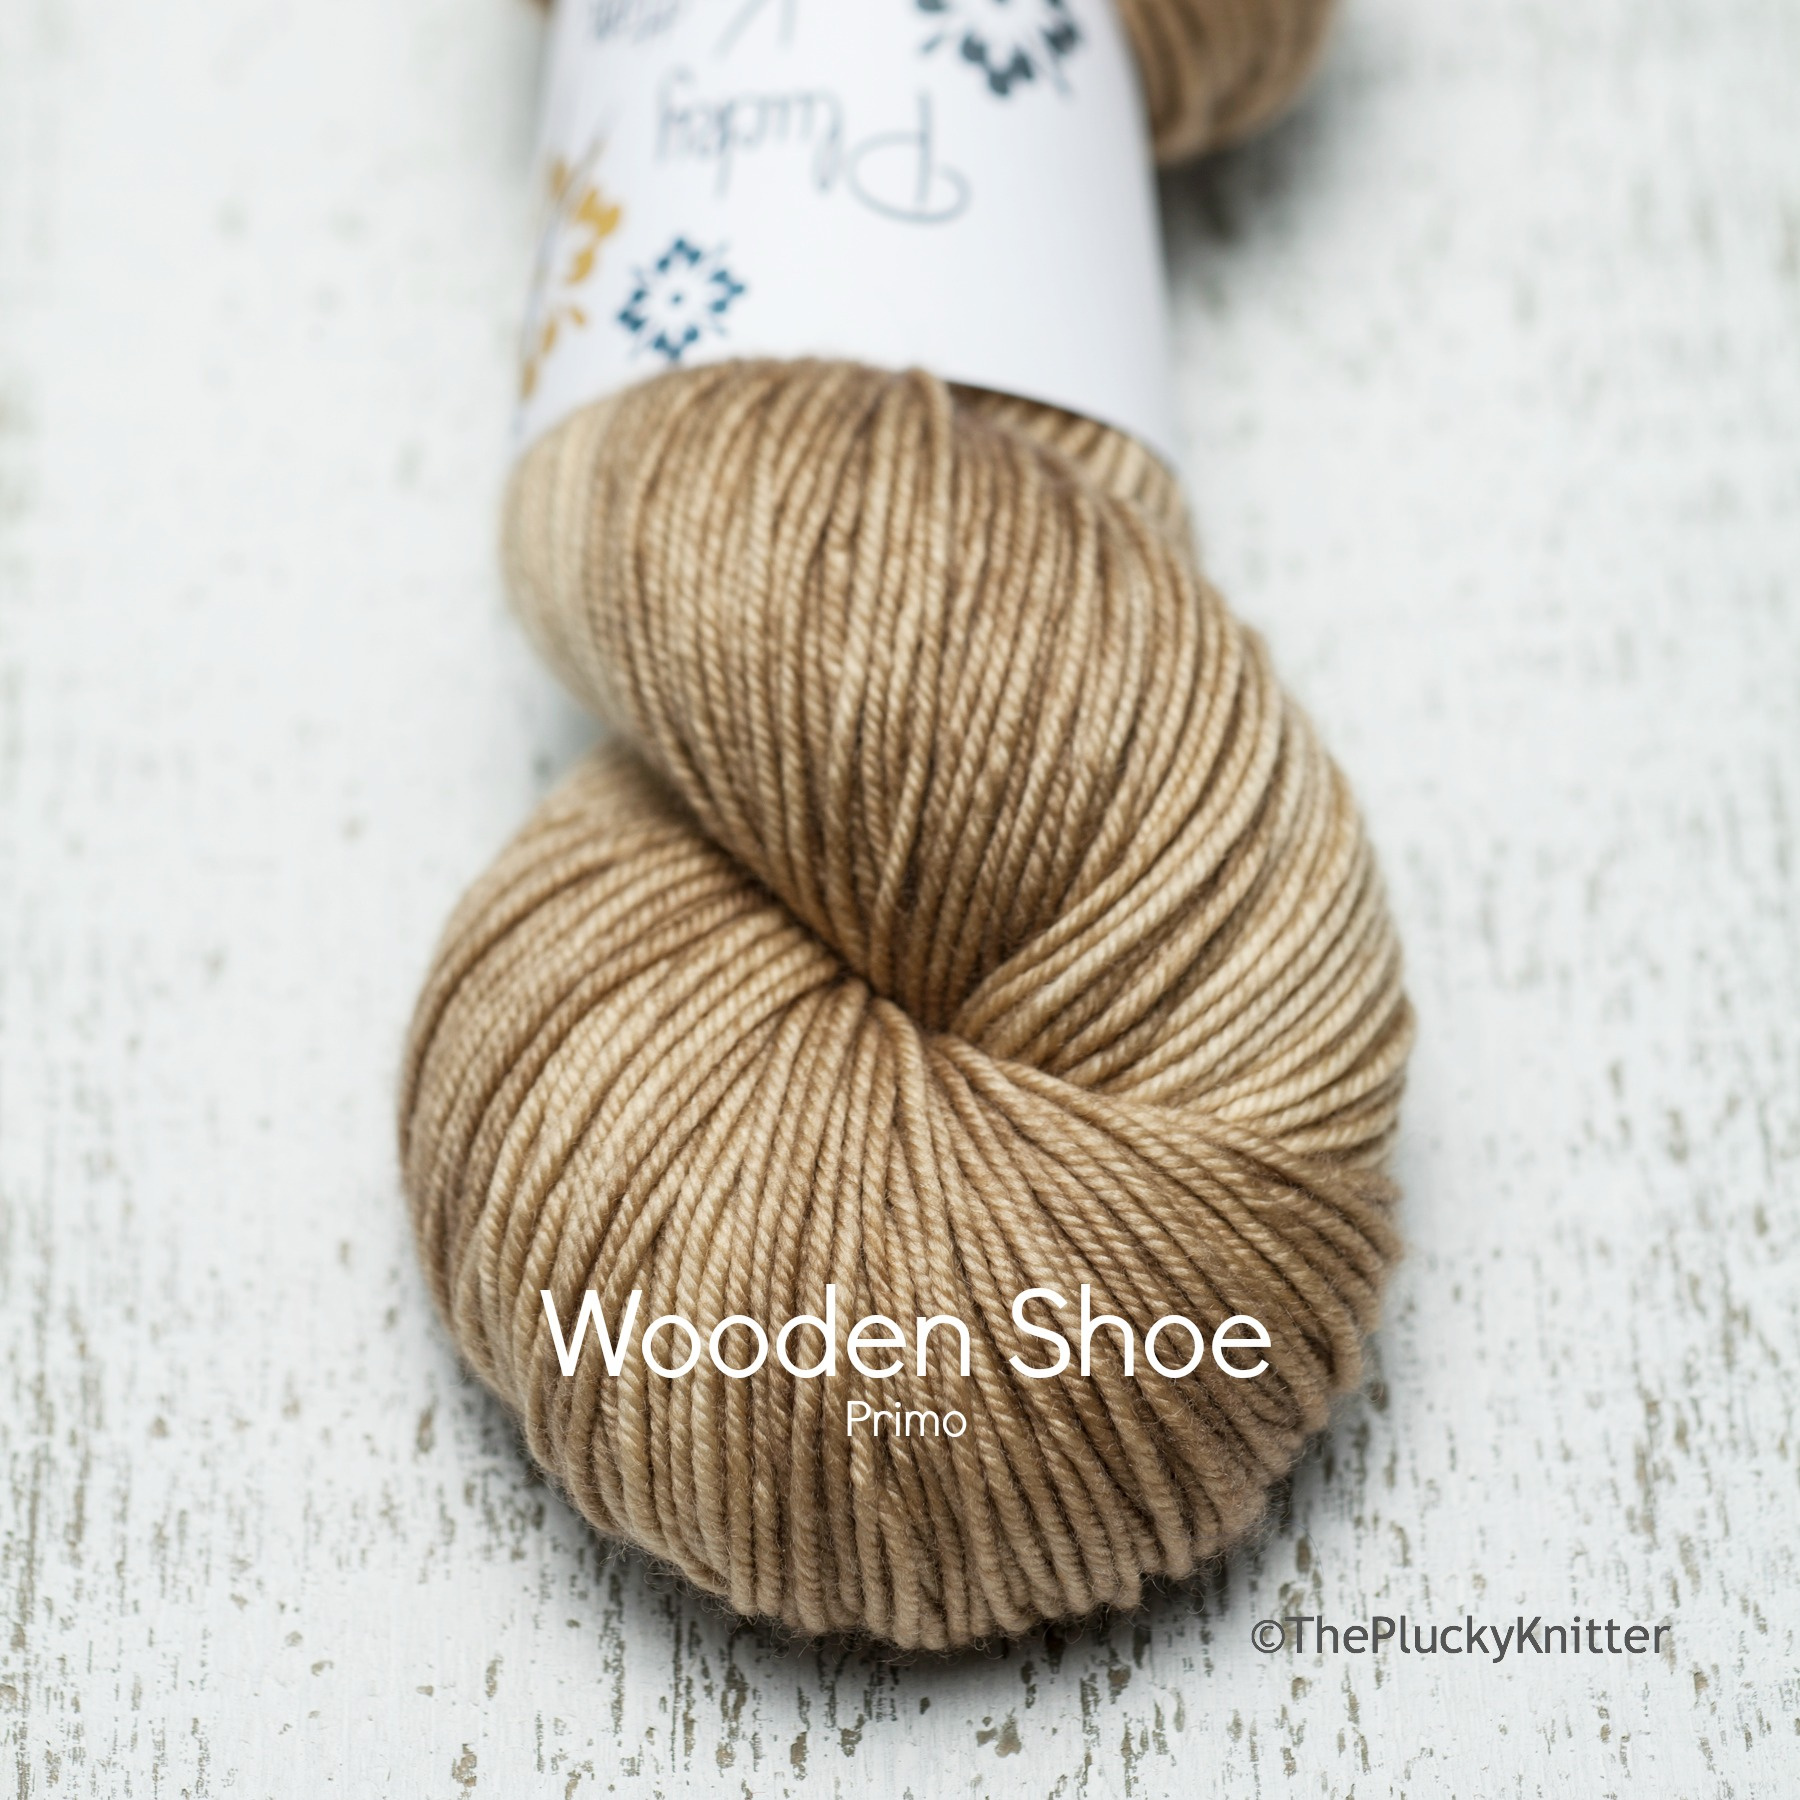 Wooden Shoe - Primo Sport